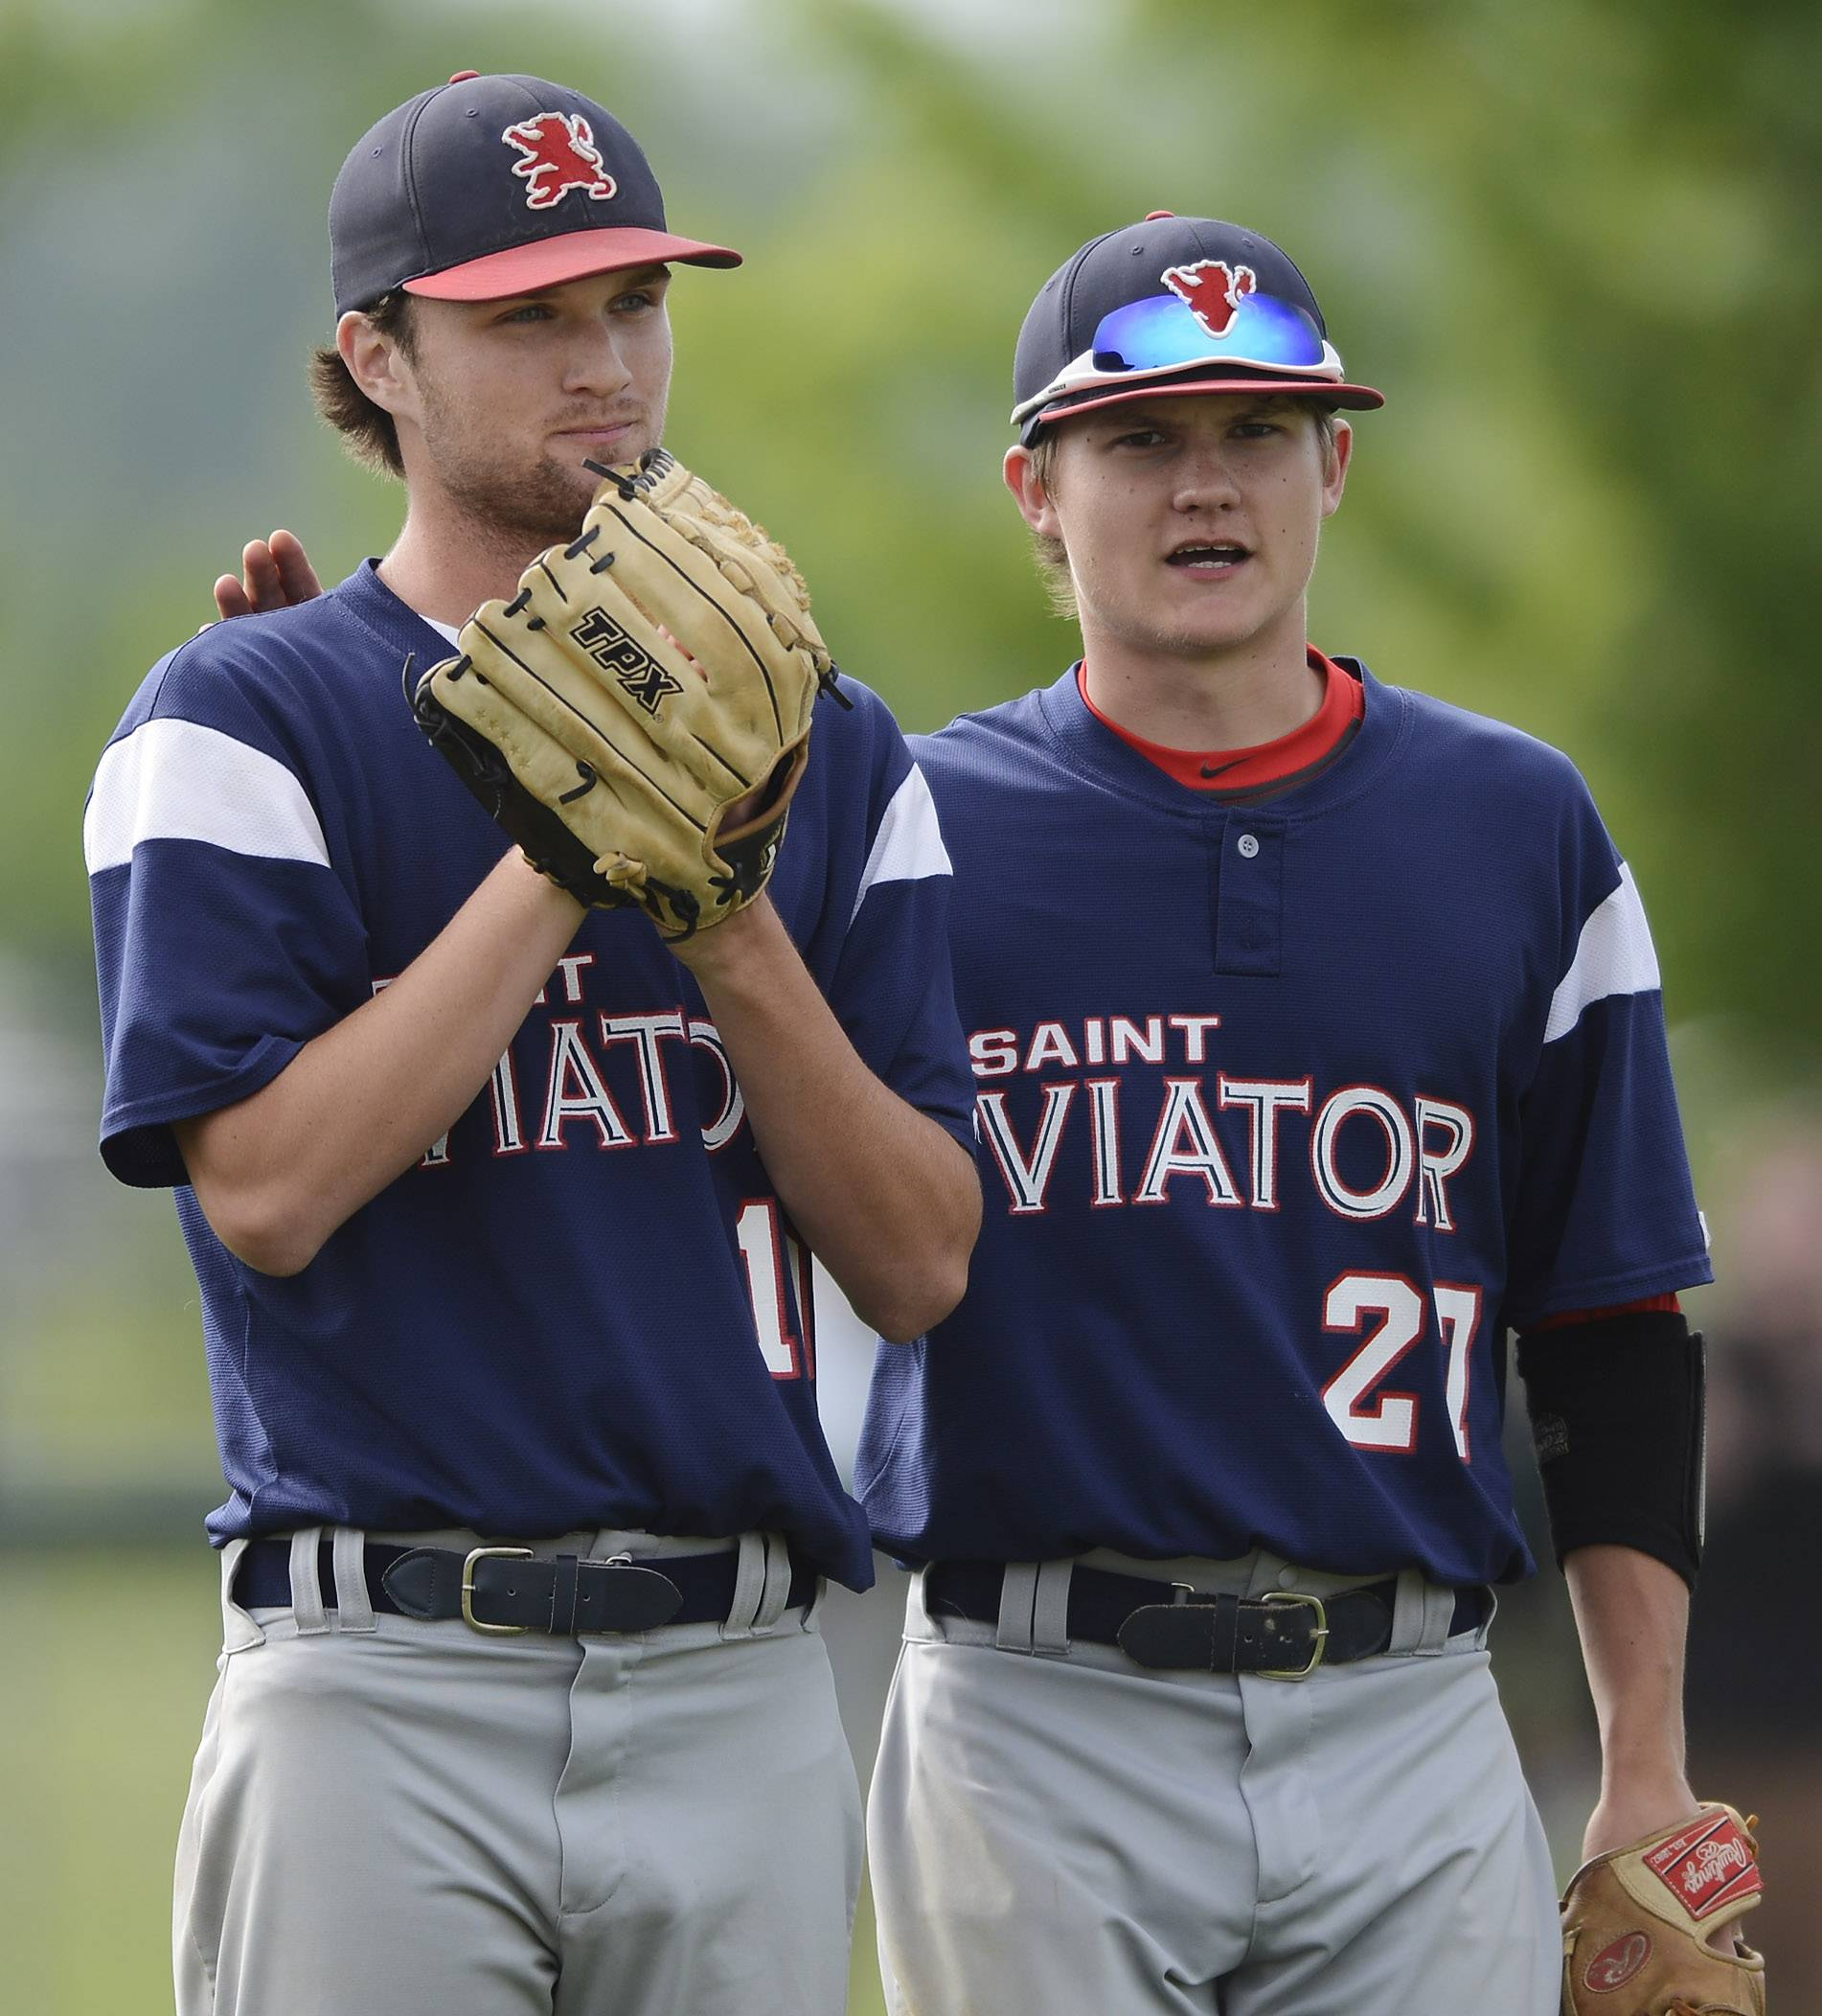 St. Viator pitcher Jack McElroy gets a pat on the back from third baseman Bobby Calmeyn after making an errant throw to first on a Libertyville bunt during Class 4A baseball sectional semifinal play at Glenbrook South on Wednesday.